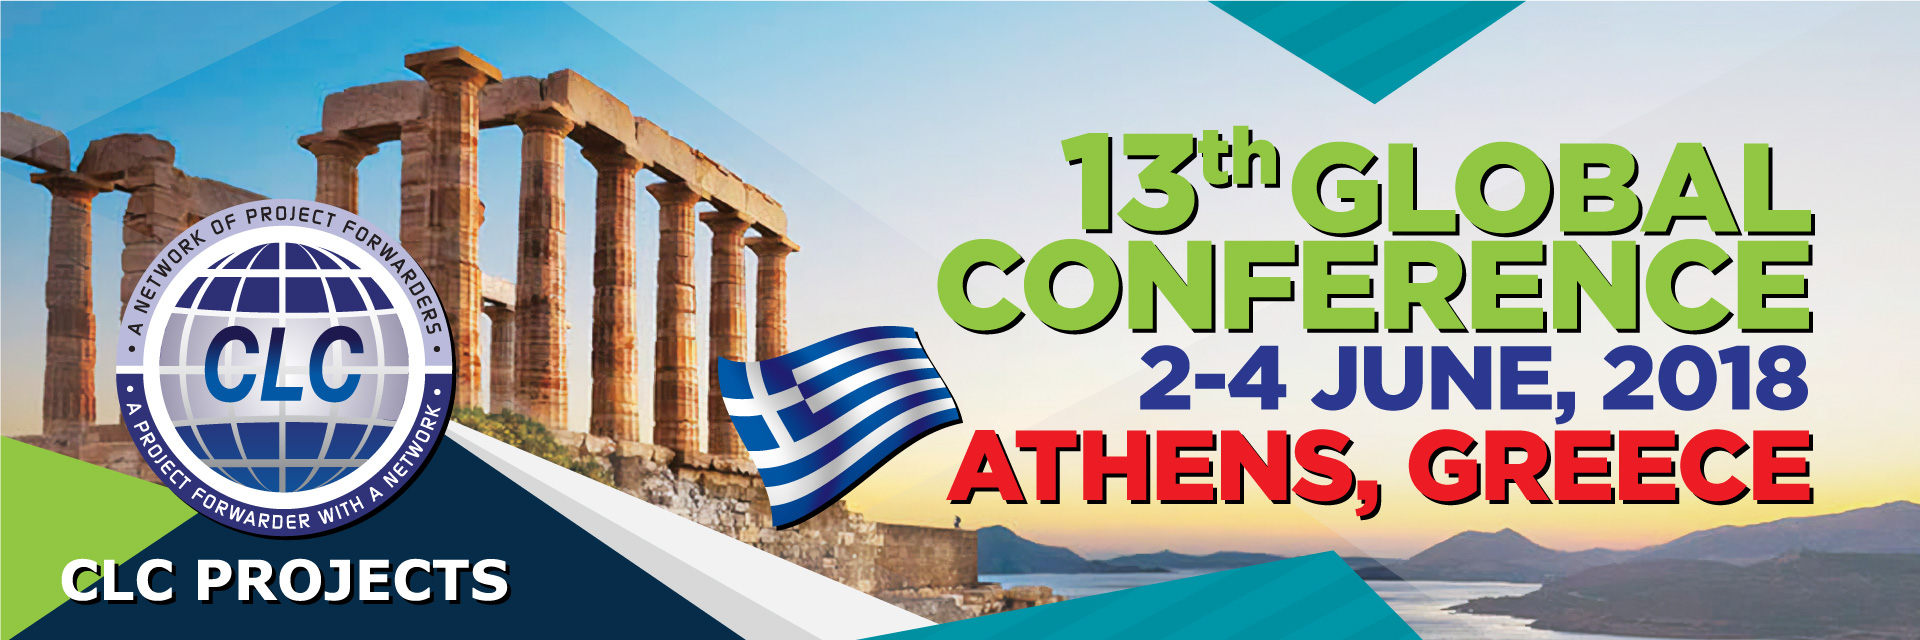 Athens Conference 2-4 June 2018